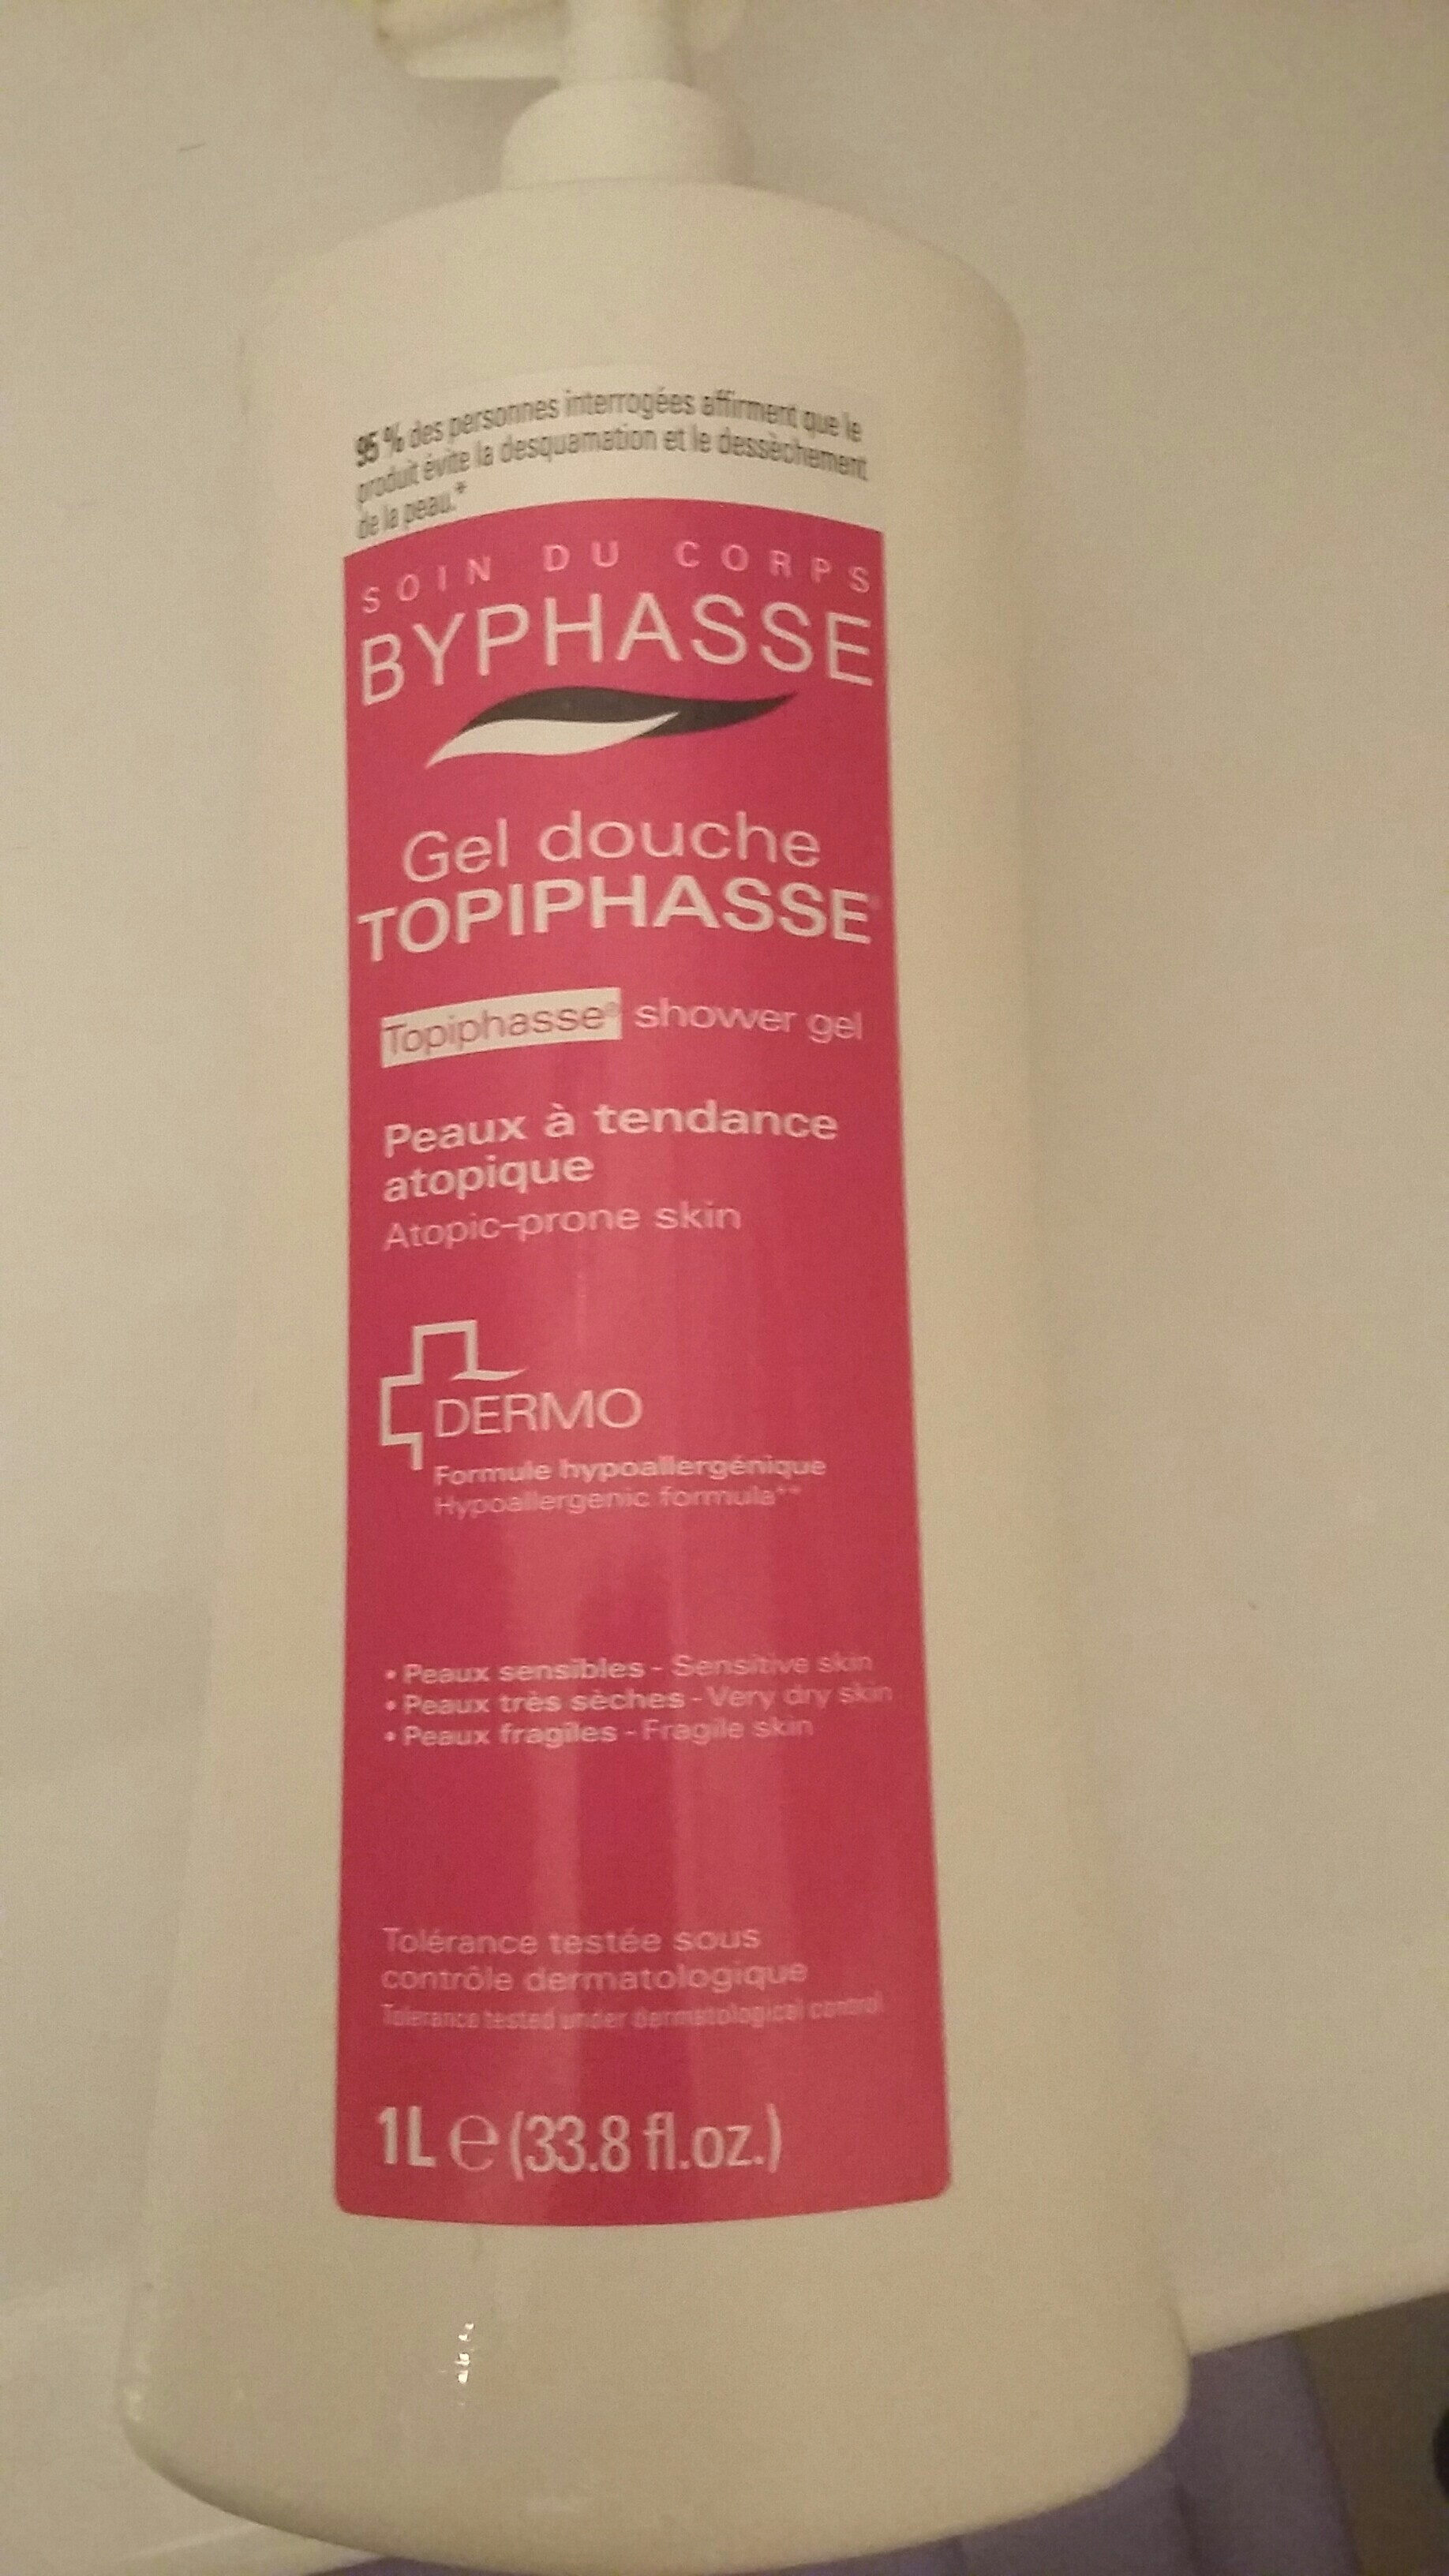 byphase gel douche - Product